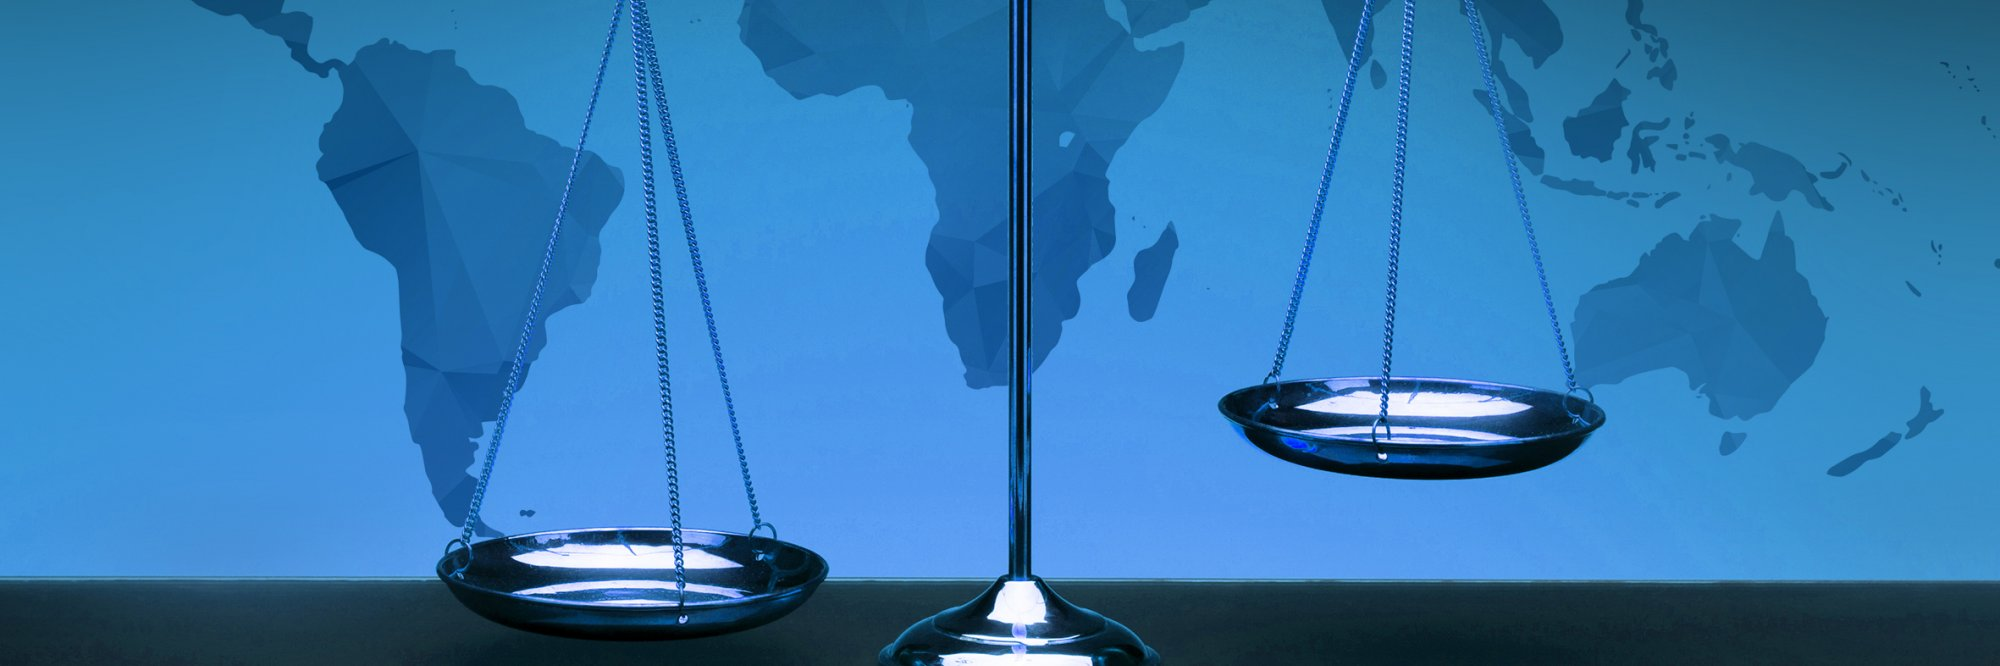 International labour standards for judges, lawyers and legal educators